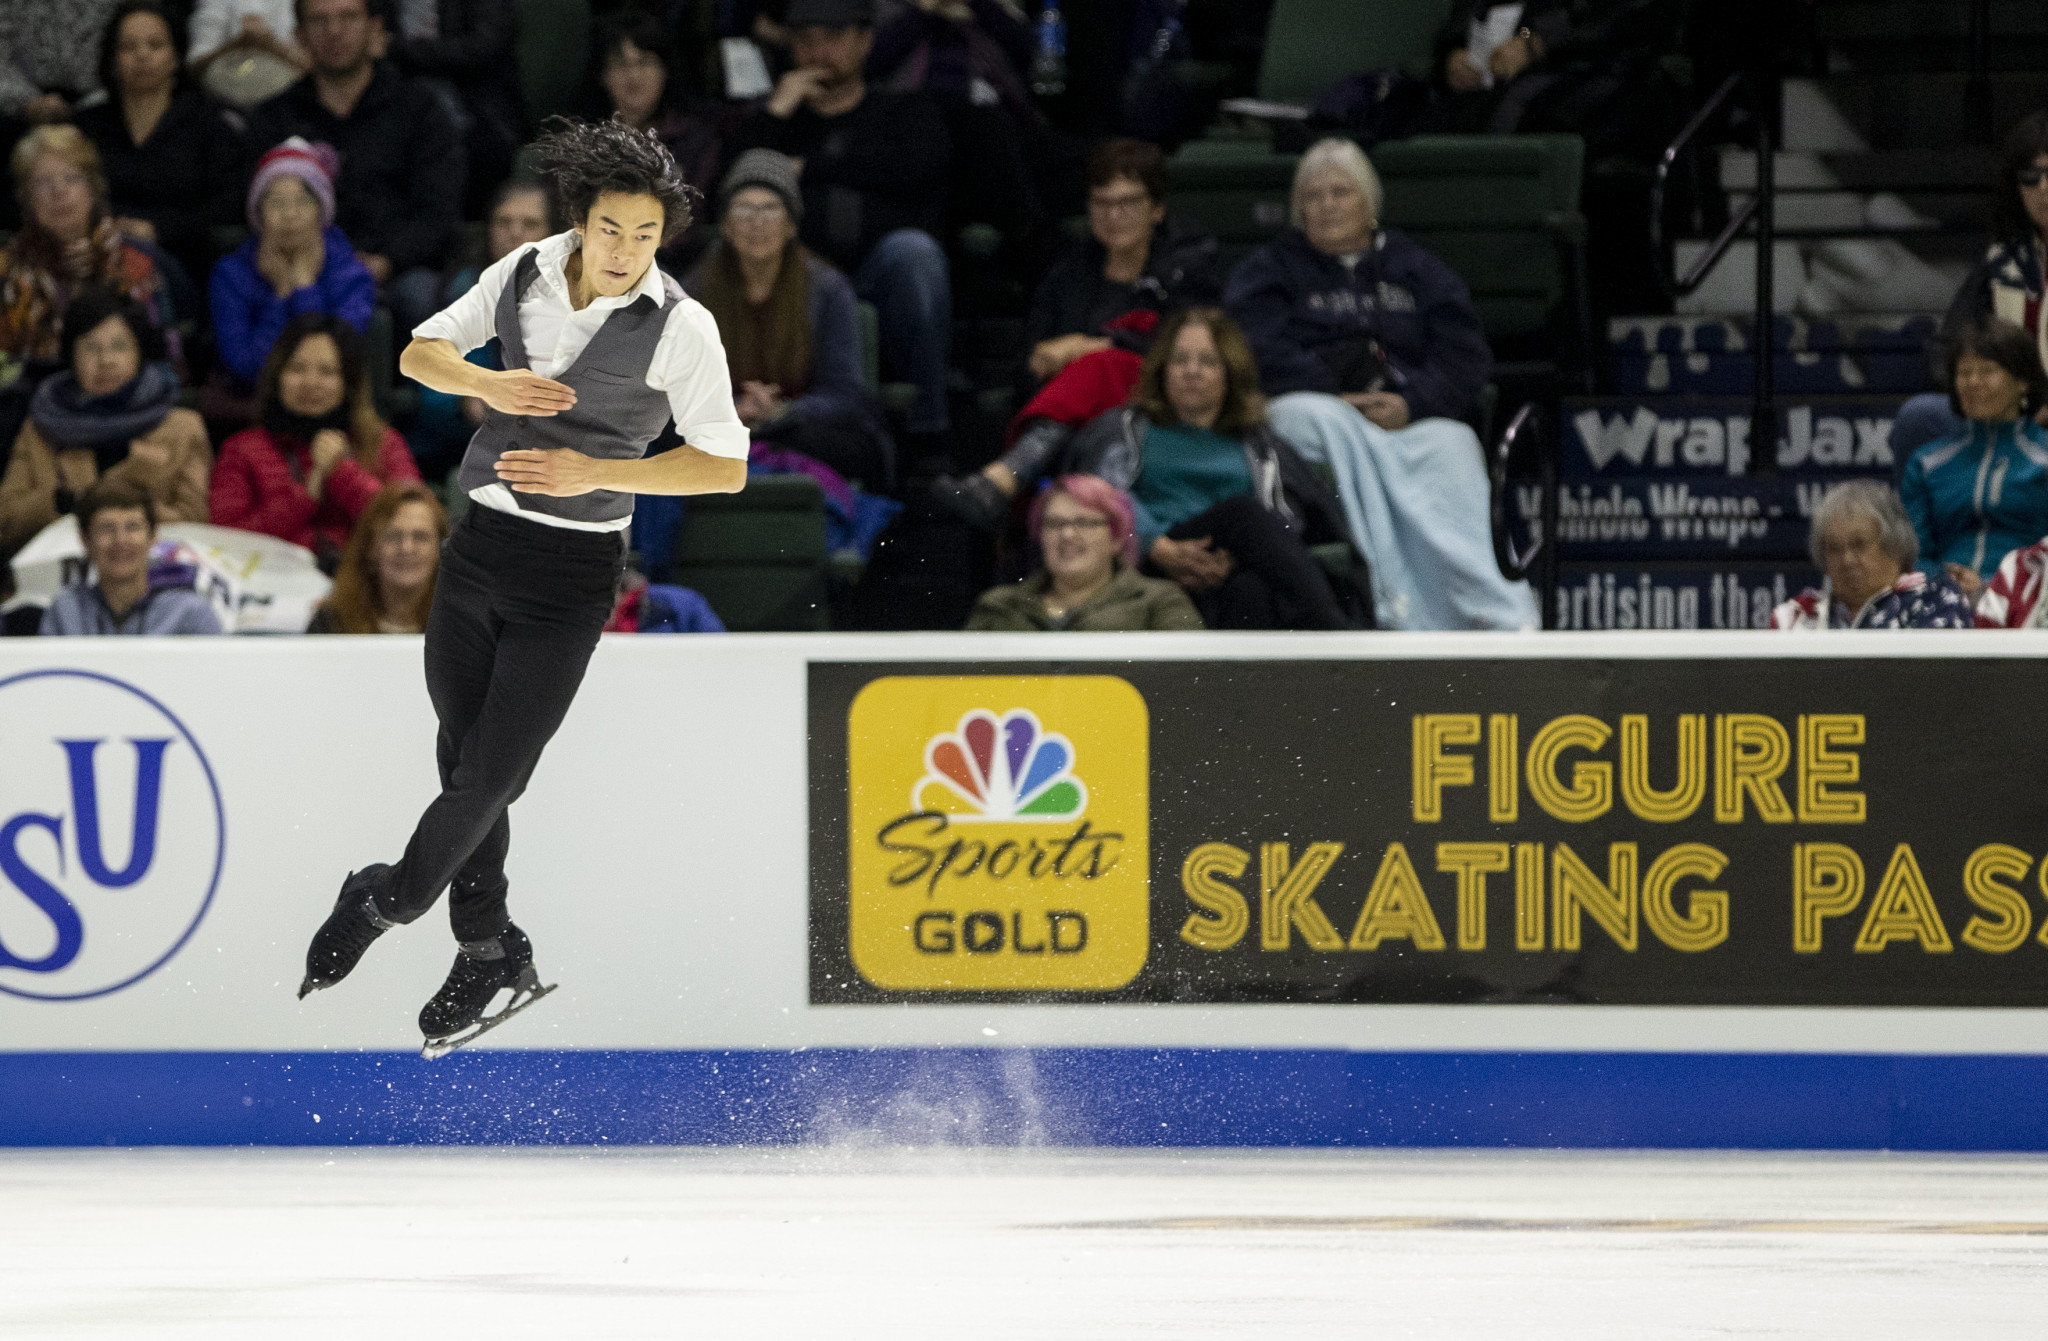 World champion Chen stars on home ice as Grand Prix of Figure Skating season begins